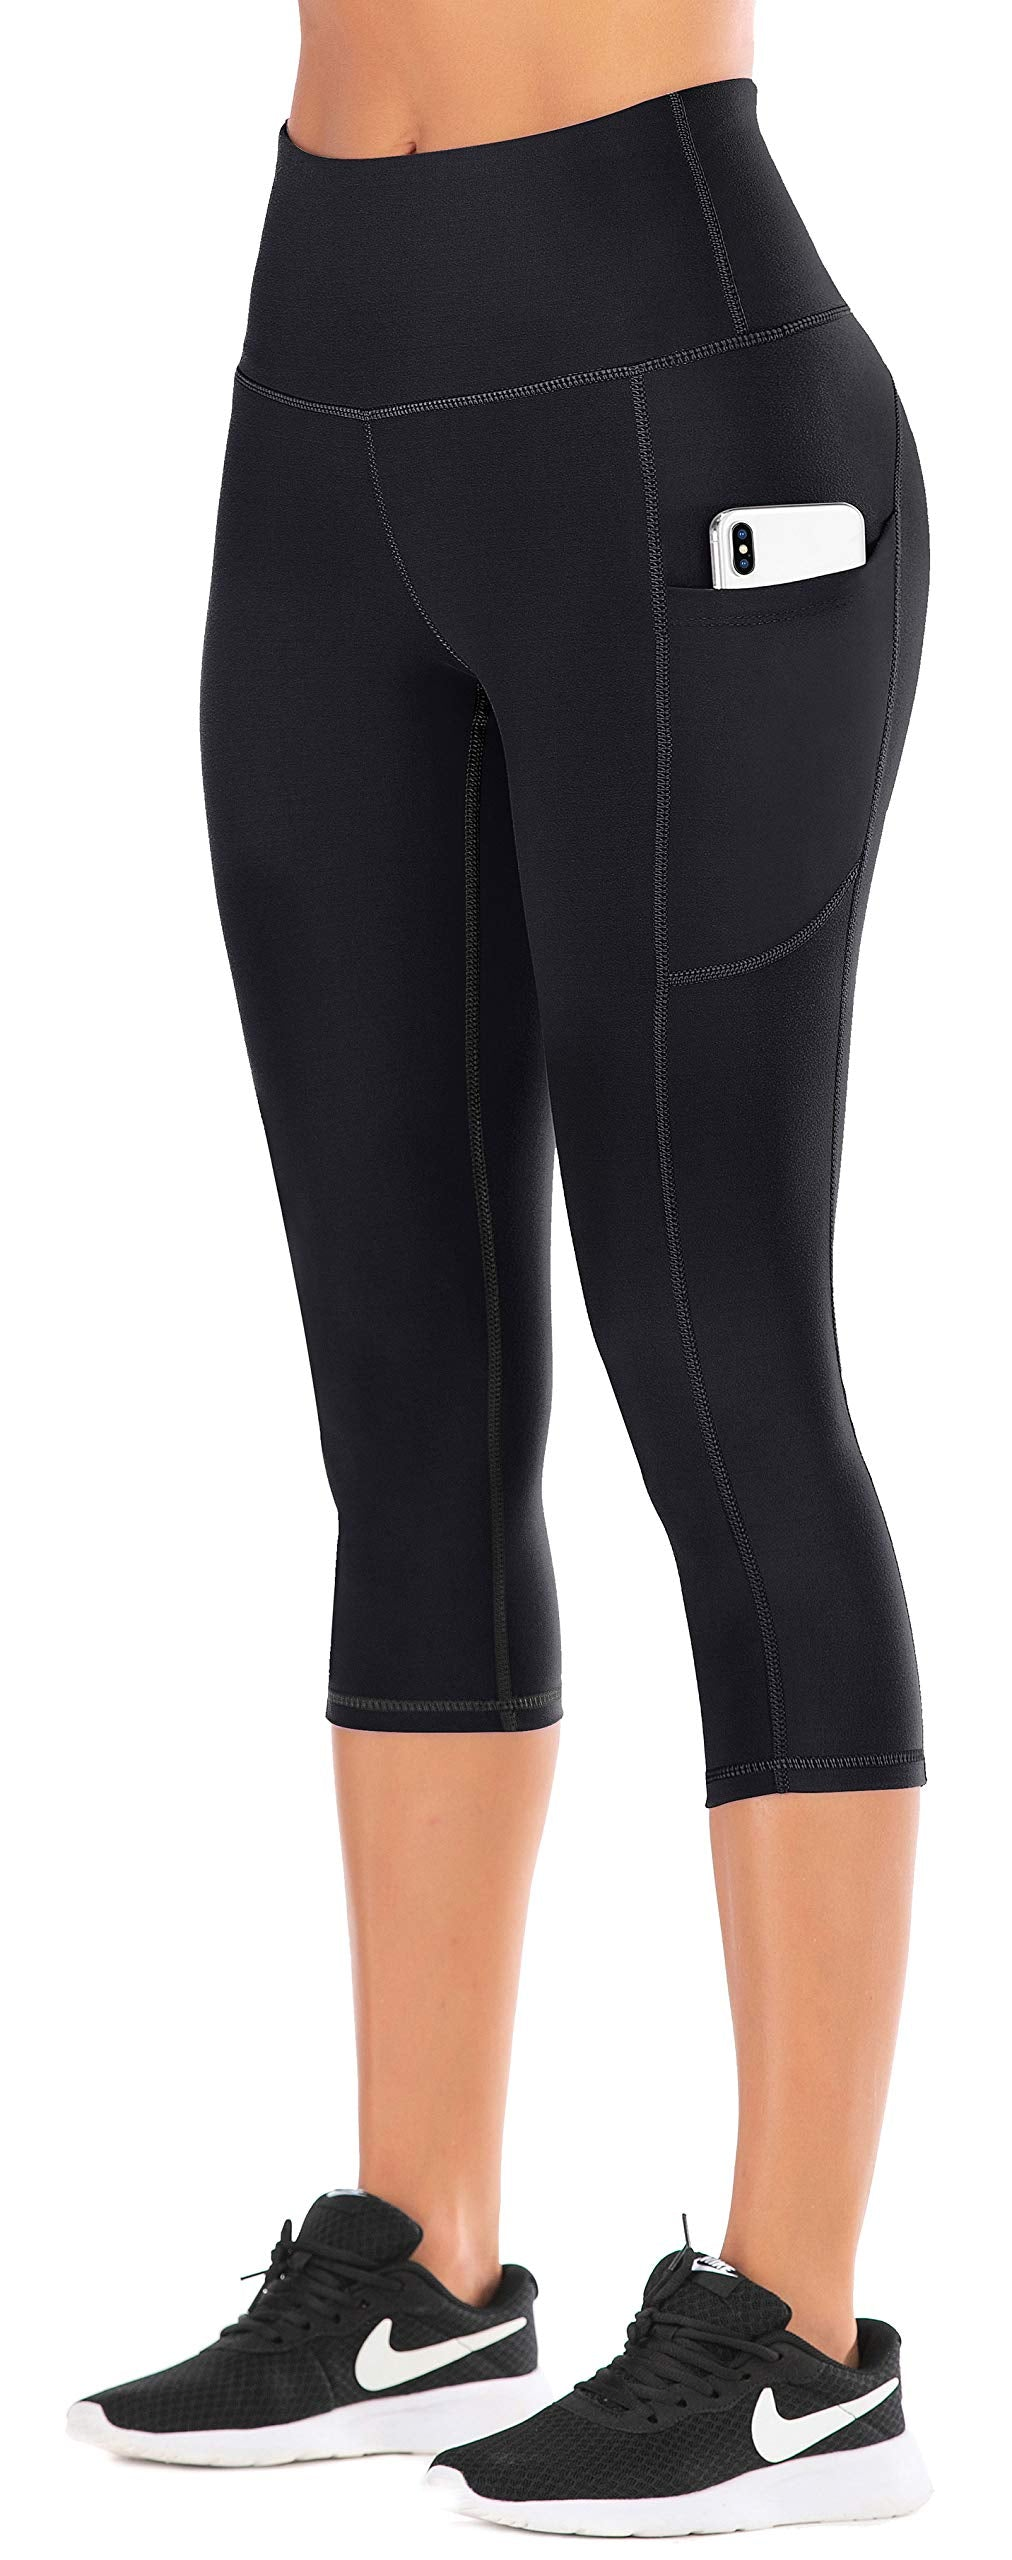 IUGA High Waist Yoga Pants with Pockets, Tummy Control Yoga Capris for Women, 4 Way Stretch Capri Leggings with Pockets(Black, L)(click for sizes) - Ctfitnesswear